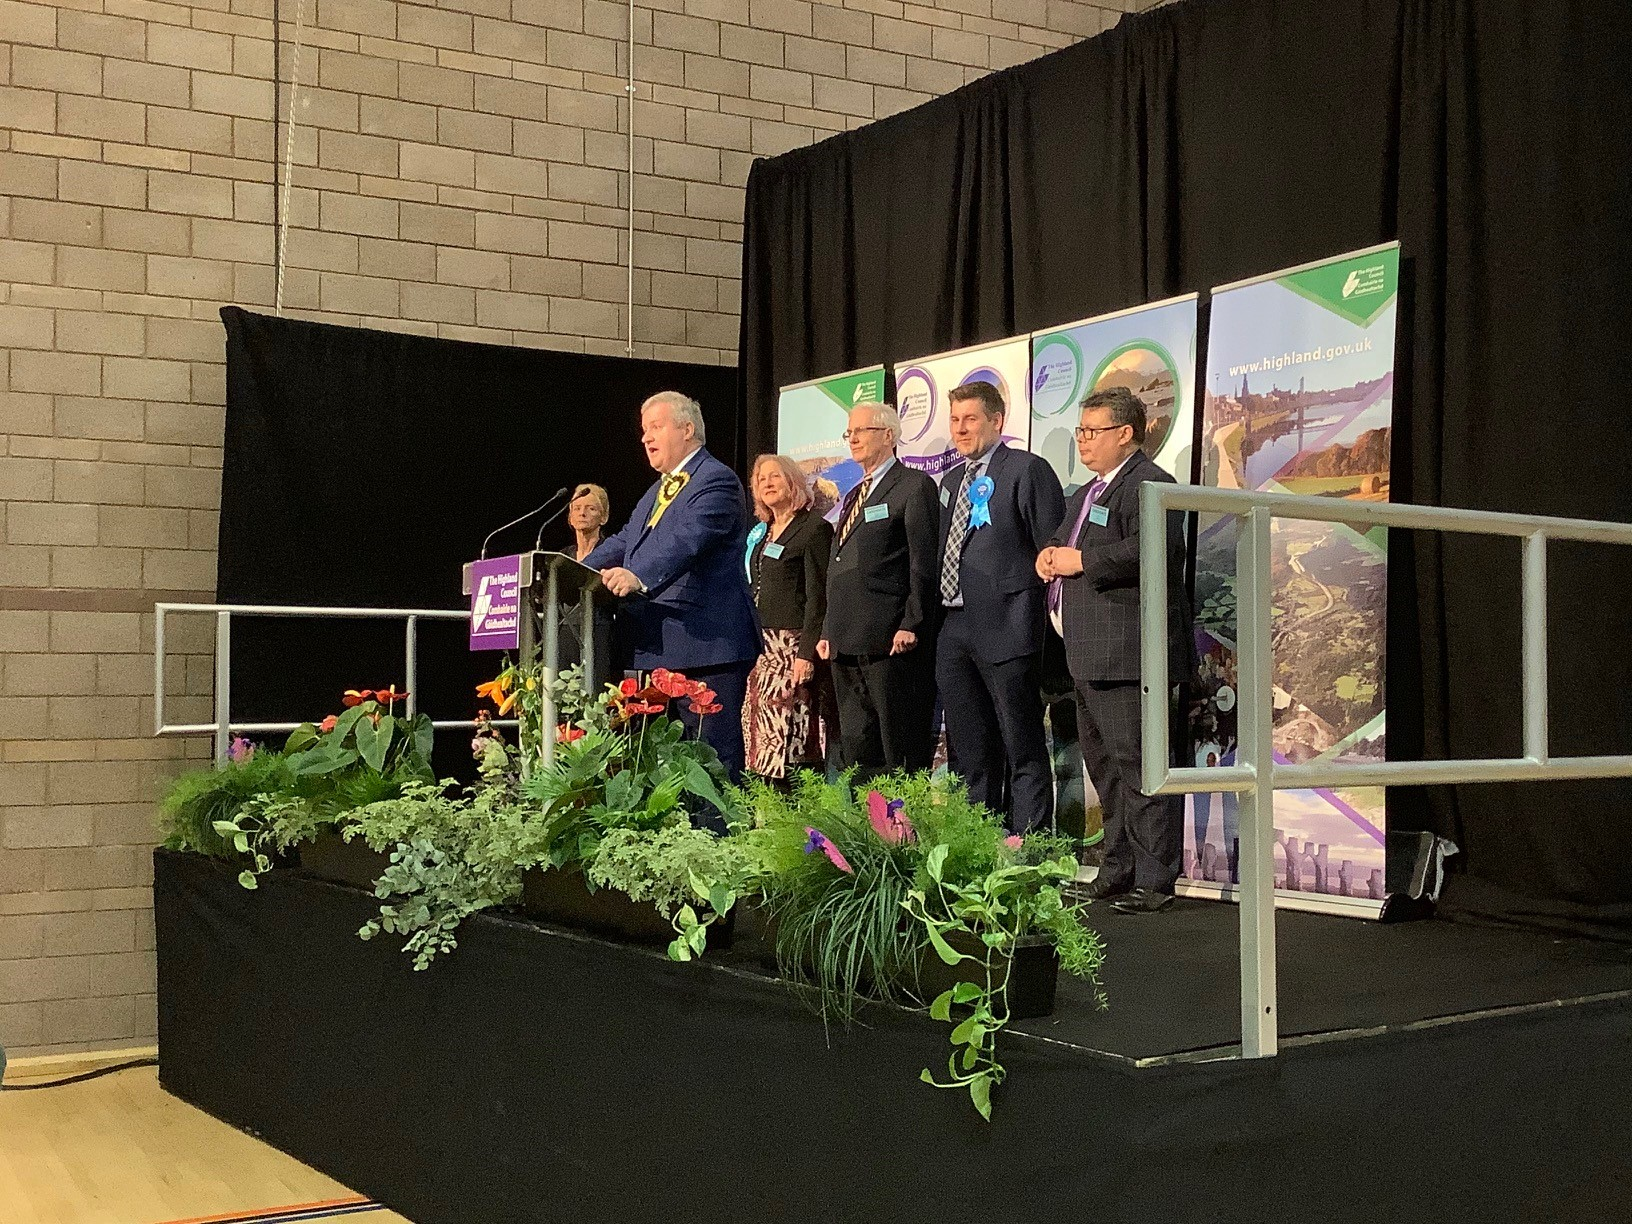 •	Ian BLACKFORD - Scottish National Party (SNP) is elected to the Ross, Skye and Lochaber constituency